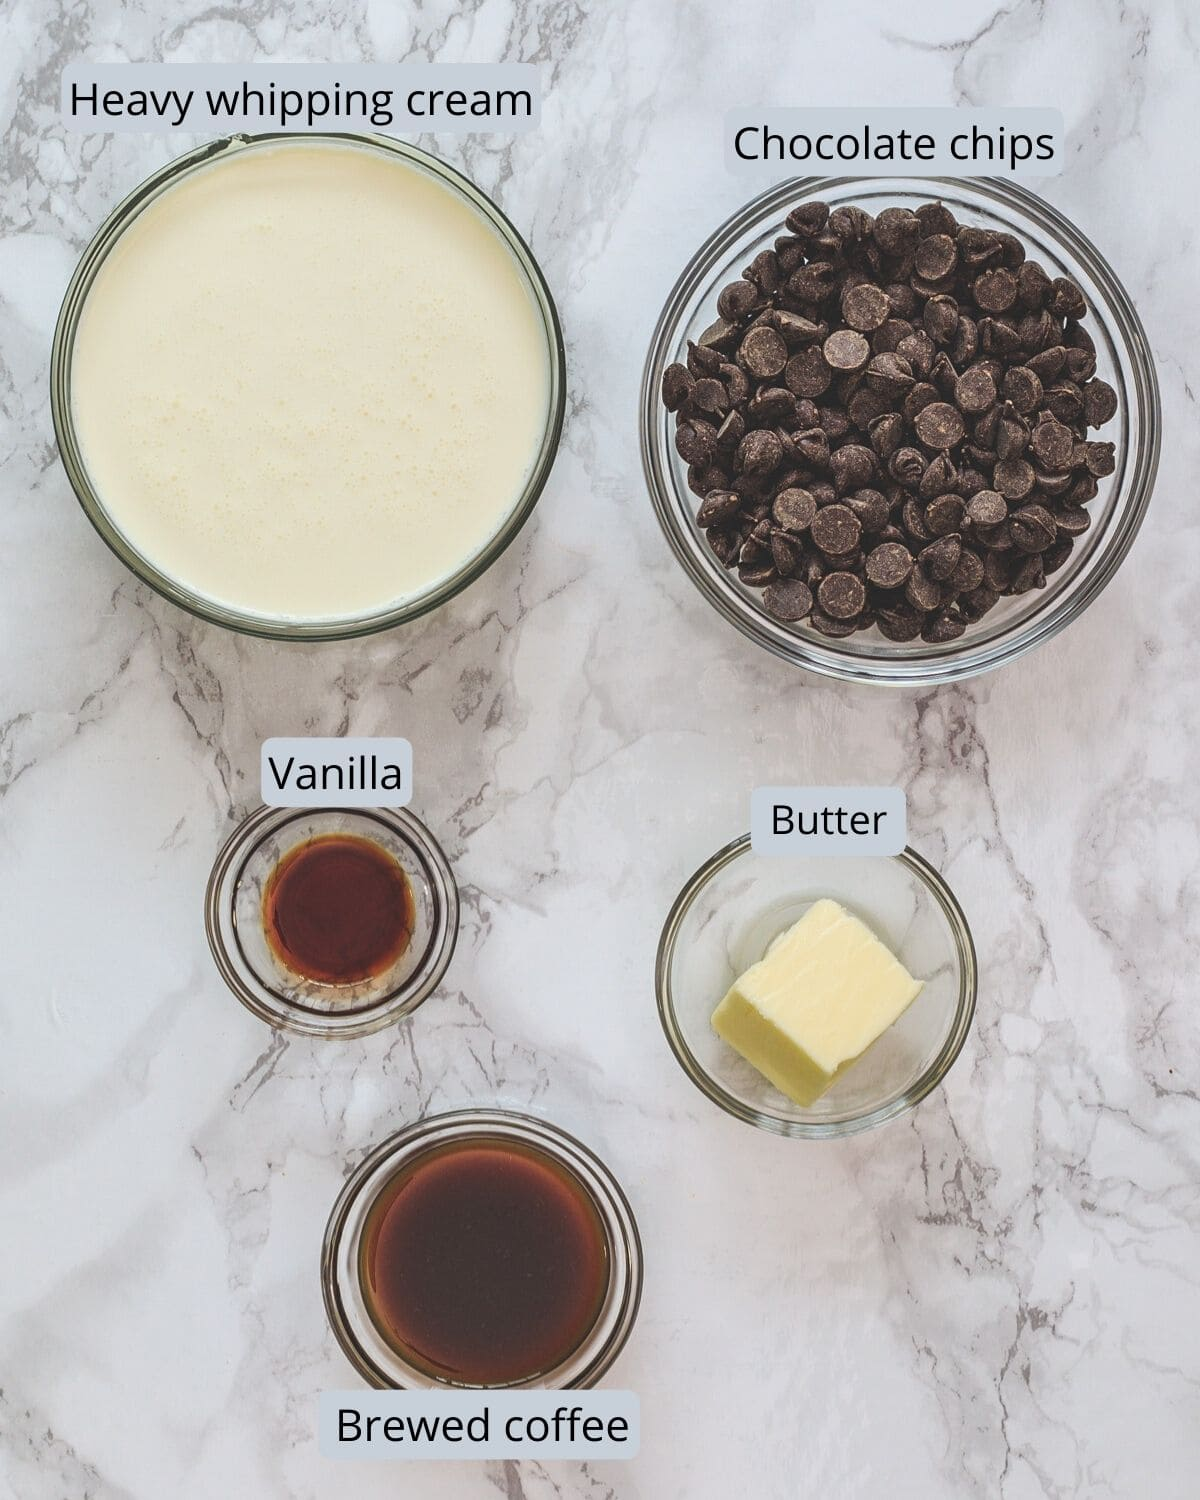 Ingredients used to make chocolate mousse includes heavy cream, chocolate chips, vanilla, brewed coffee, unsalted butter.